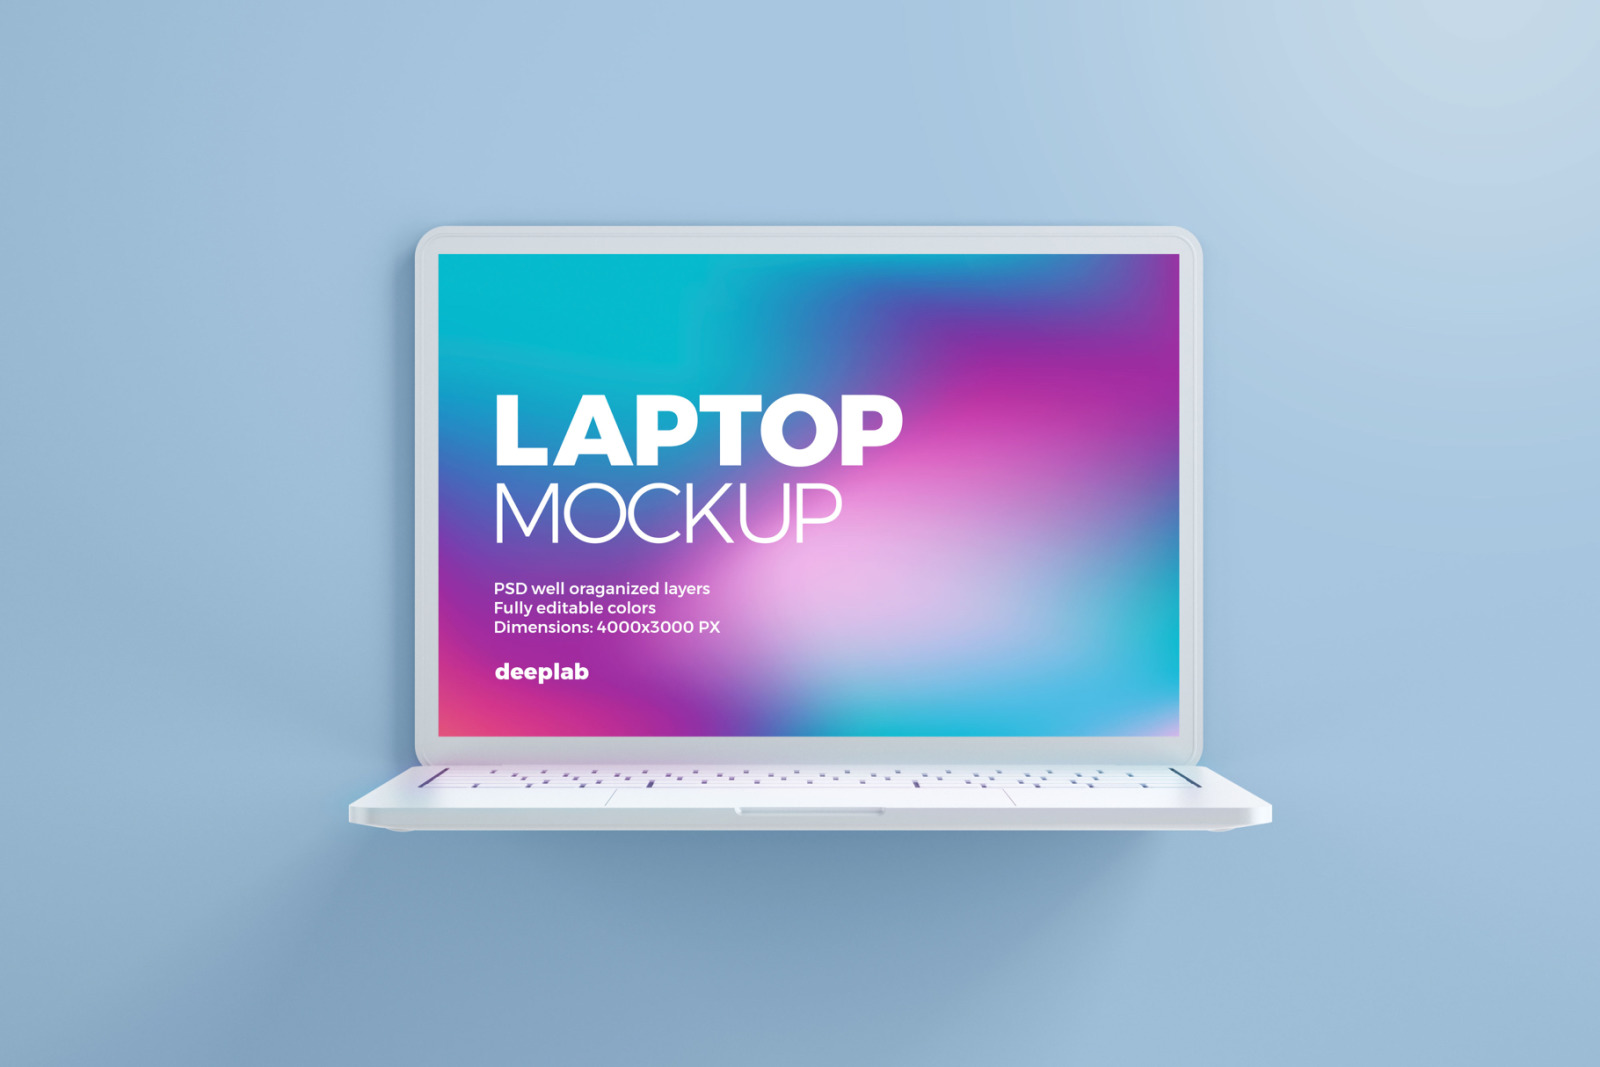 Download Laptop Mockup Free Psd PSD - Free PSD Mockup Templates